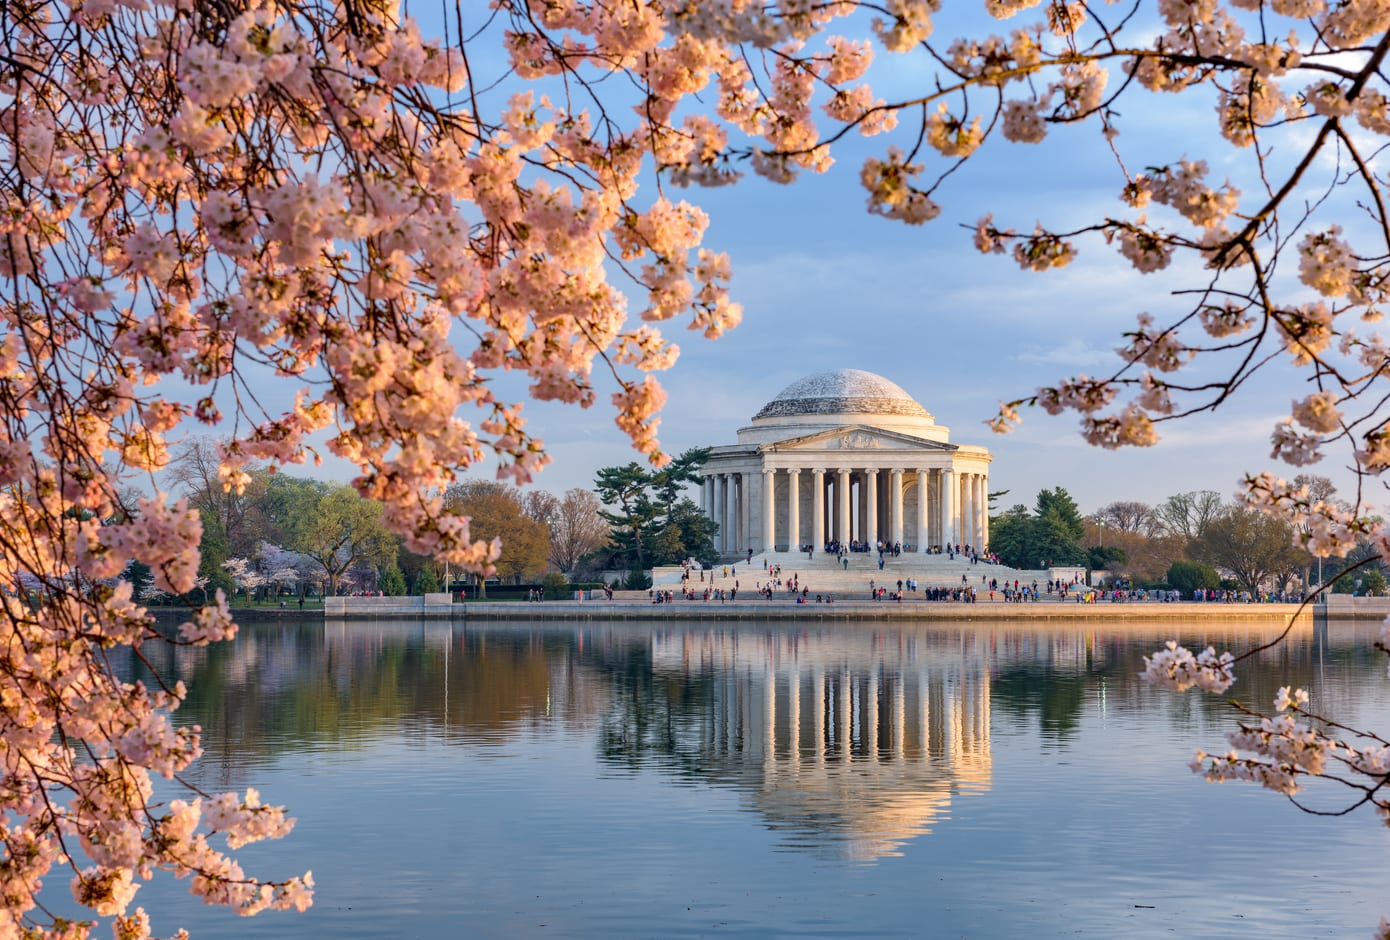 Cherry trees blooming in Washington DC.